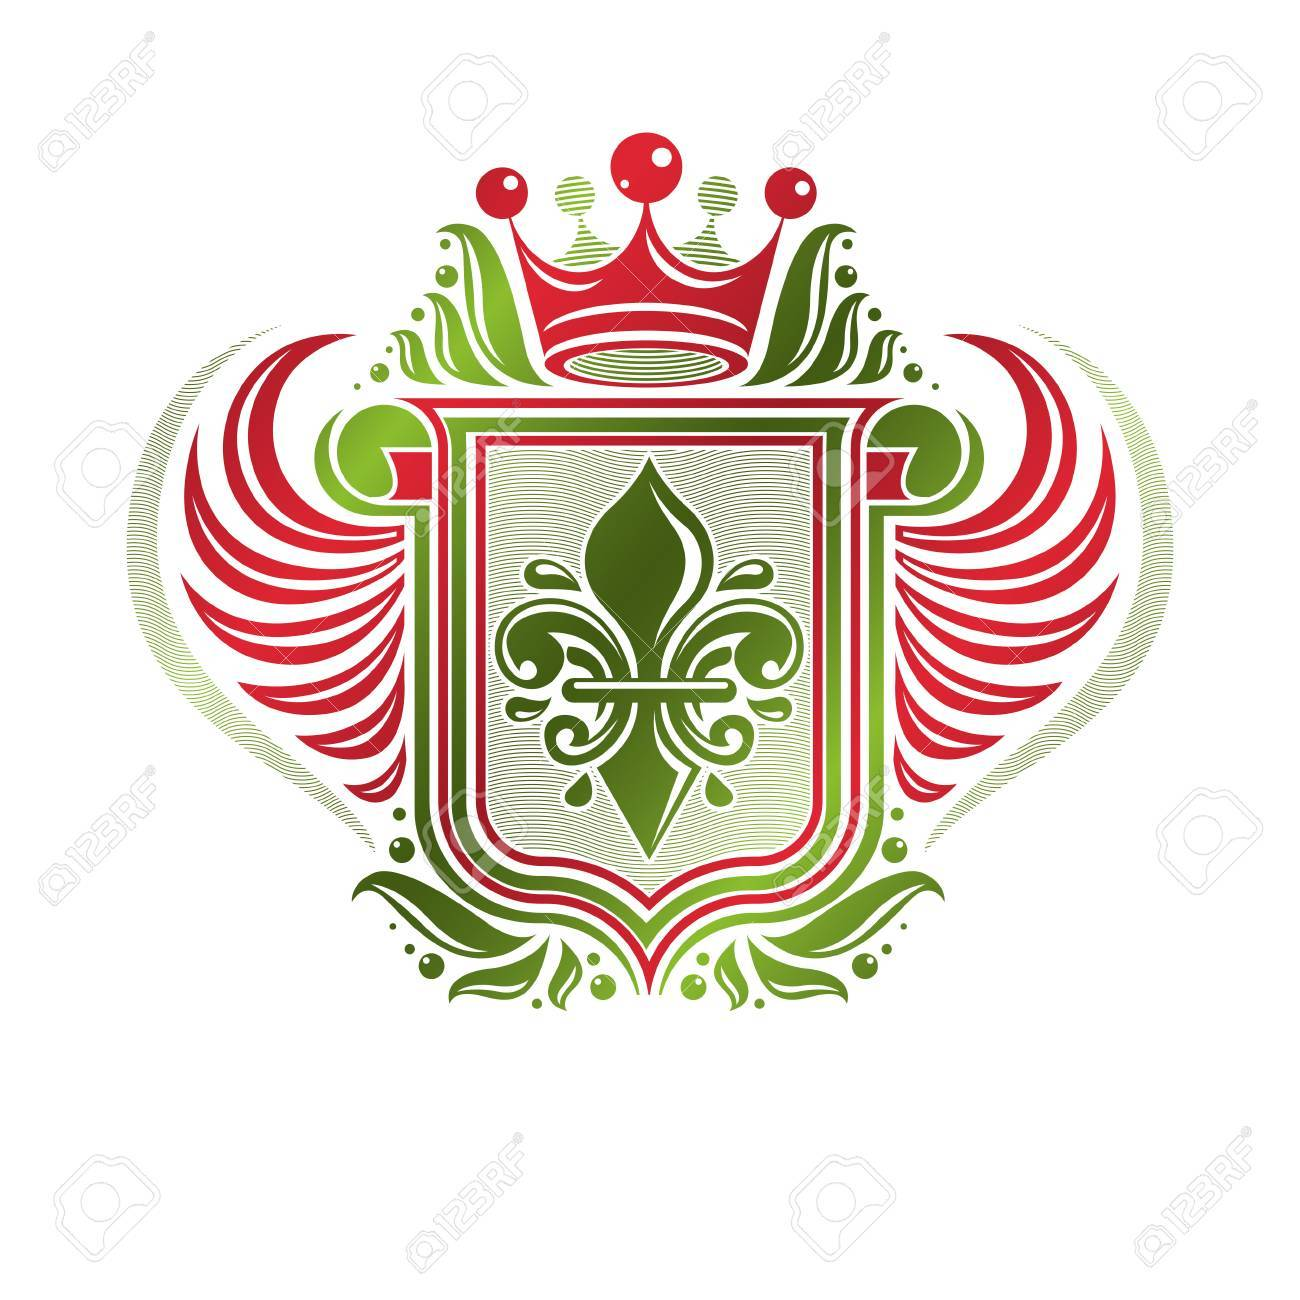 The heraldic lily is the favorite emblem of France 2